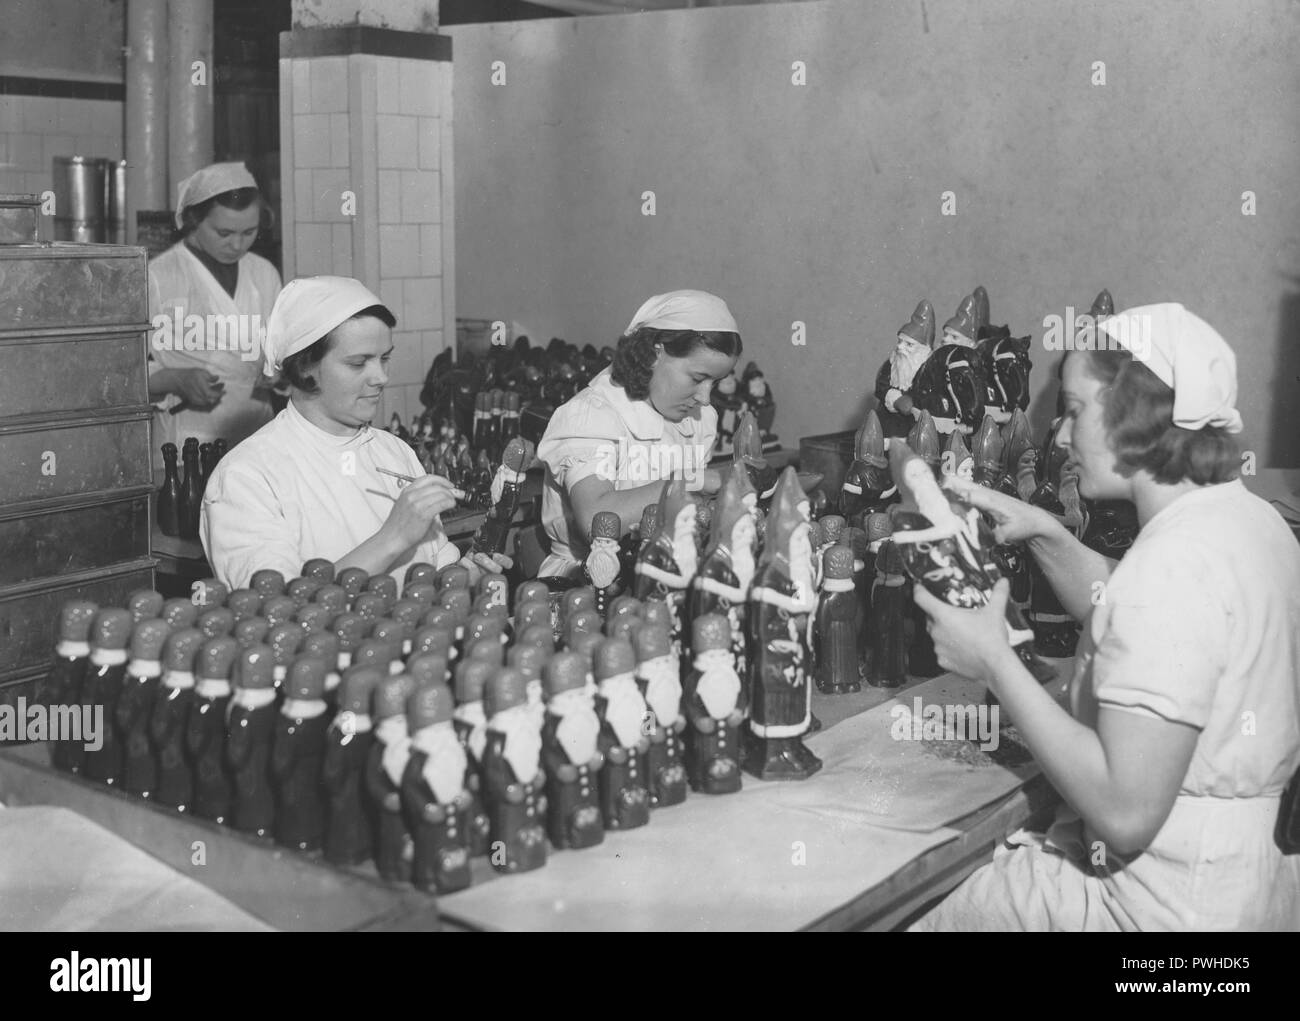 Christmas chokolate. Three young employees in the factory of the swedish chocolate maker company Cloetta. They are busy finishing the chocolate santa clauses that needs to be delivered to the stores. Cloetta company was established 1872 and was first to make chocolate products in an industrial environment. Sweden 1940s - Stock Image